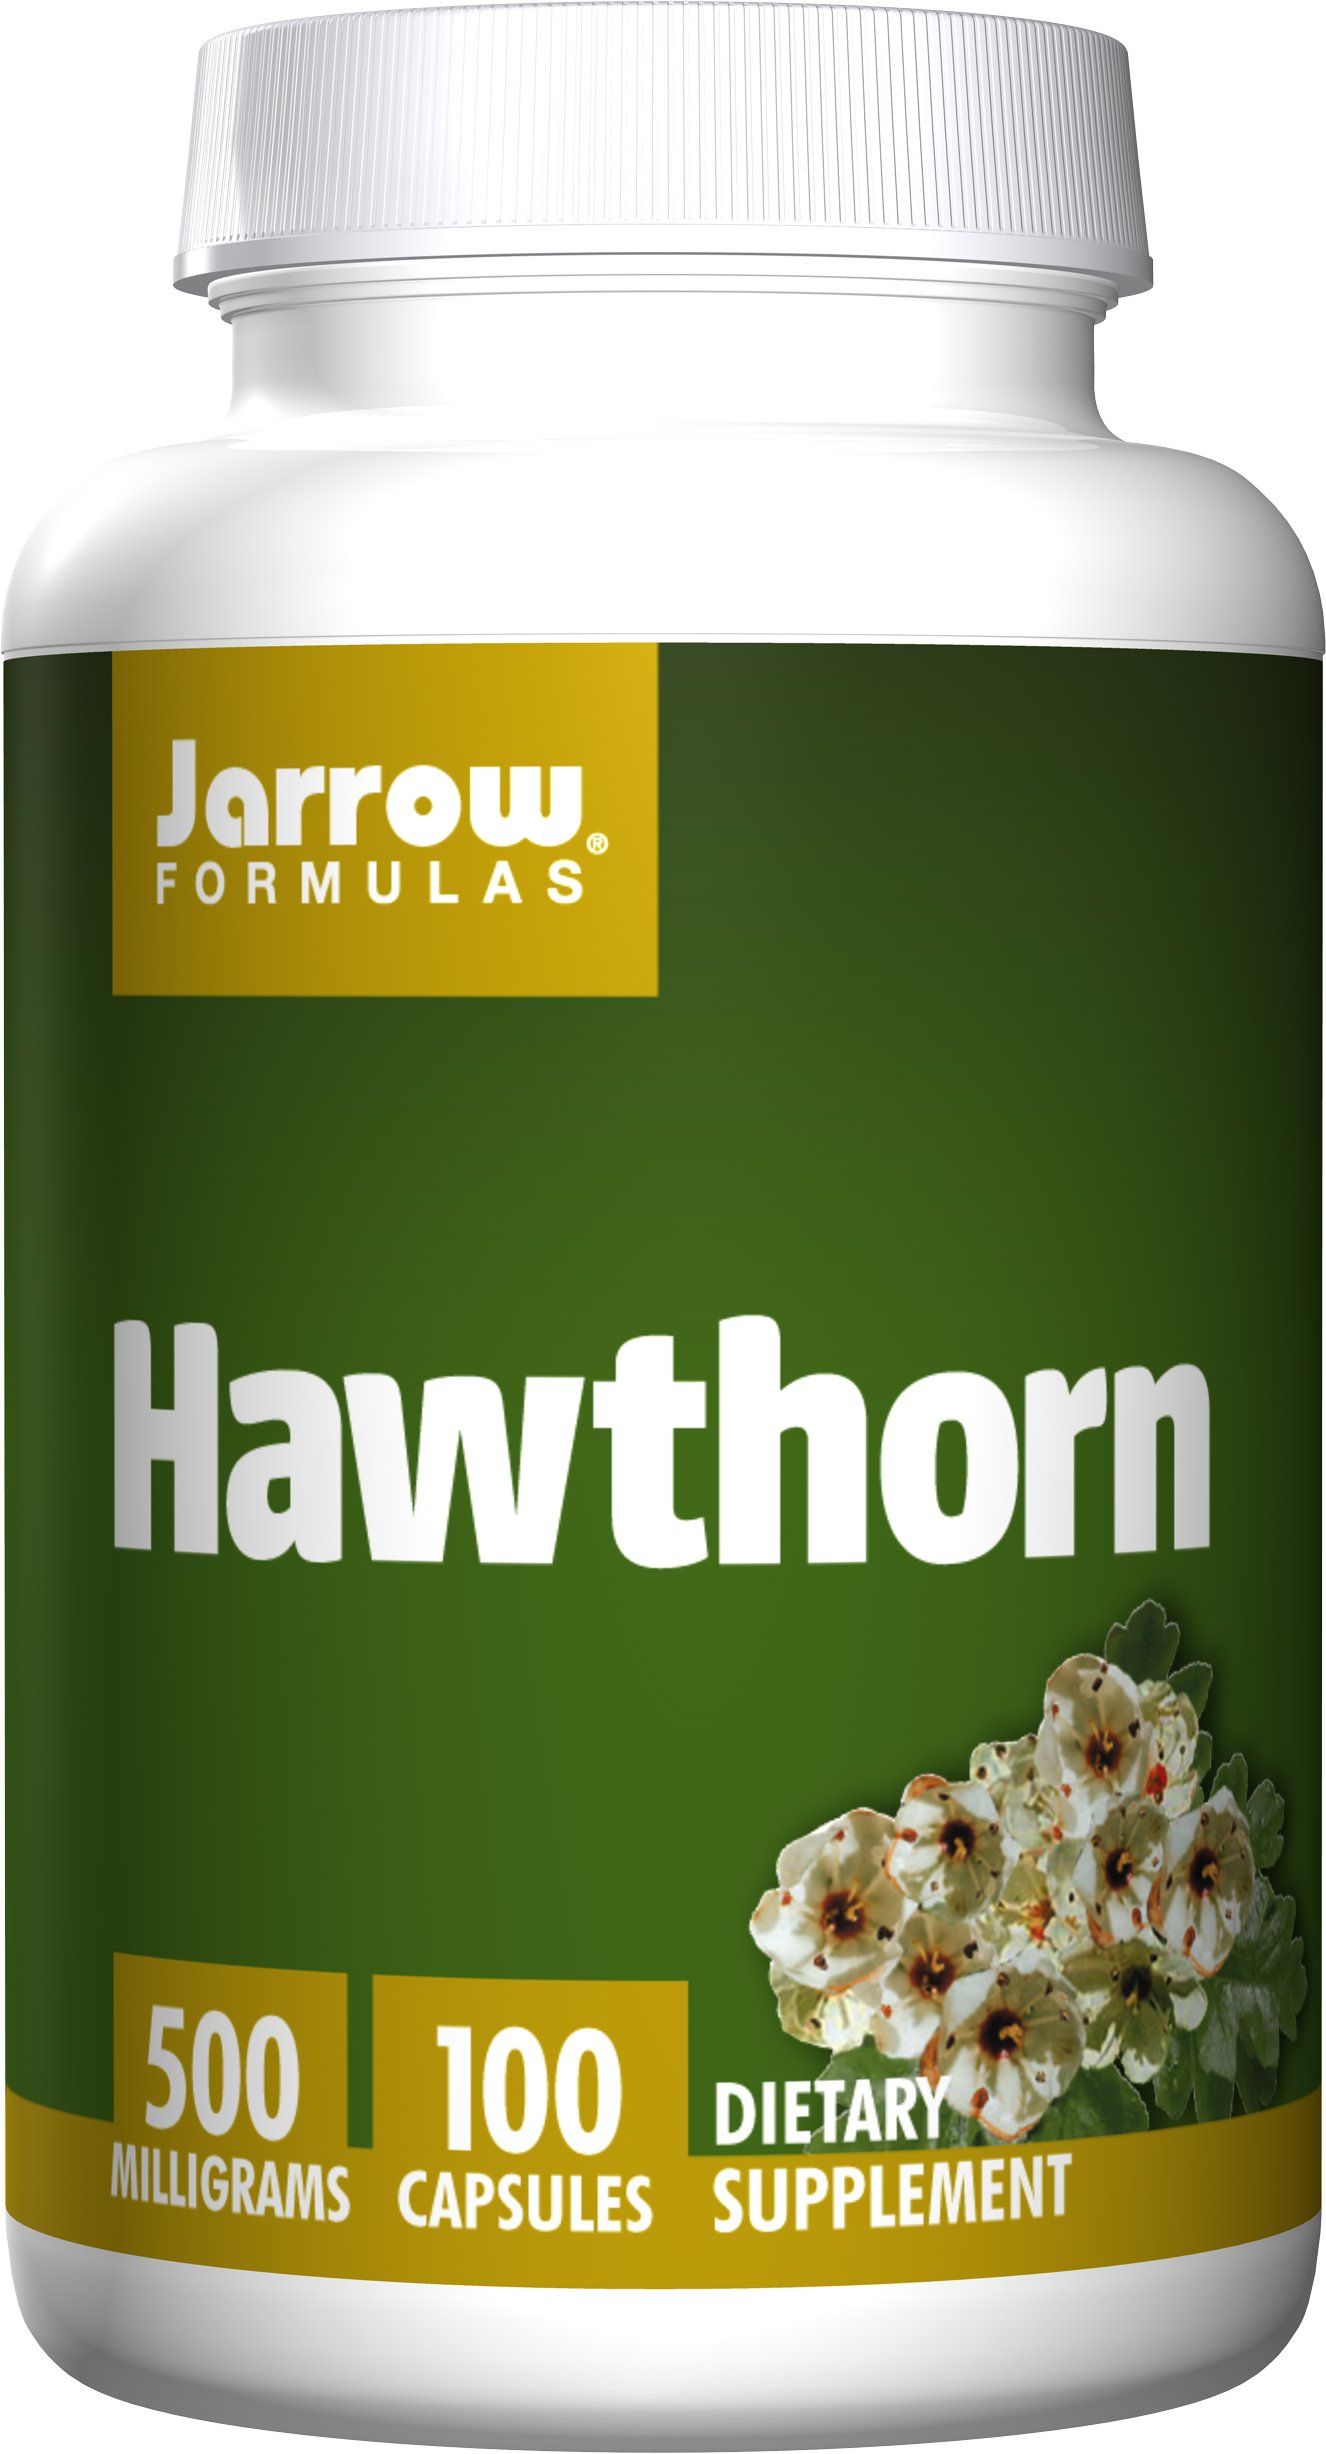 Jarrow Hawthorn 500mg